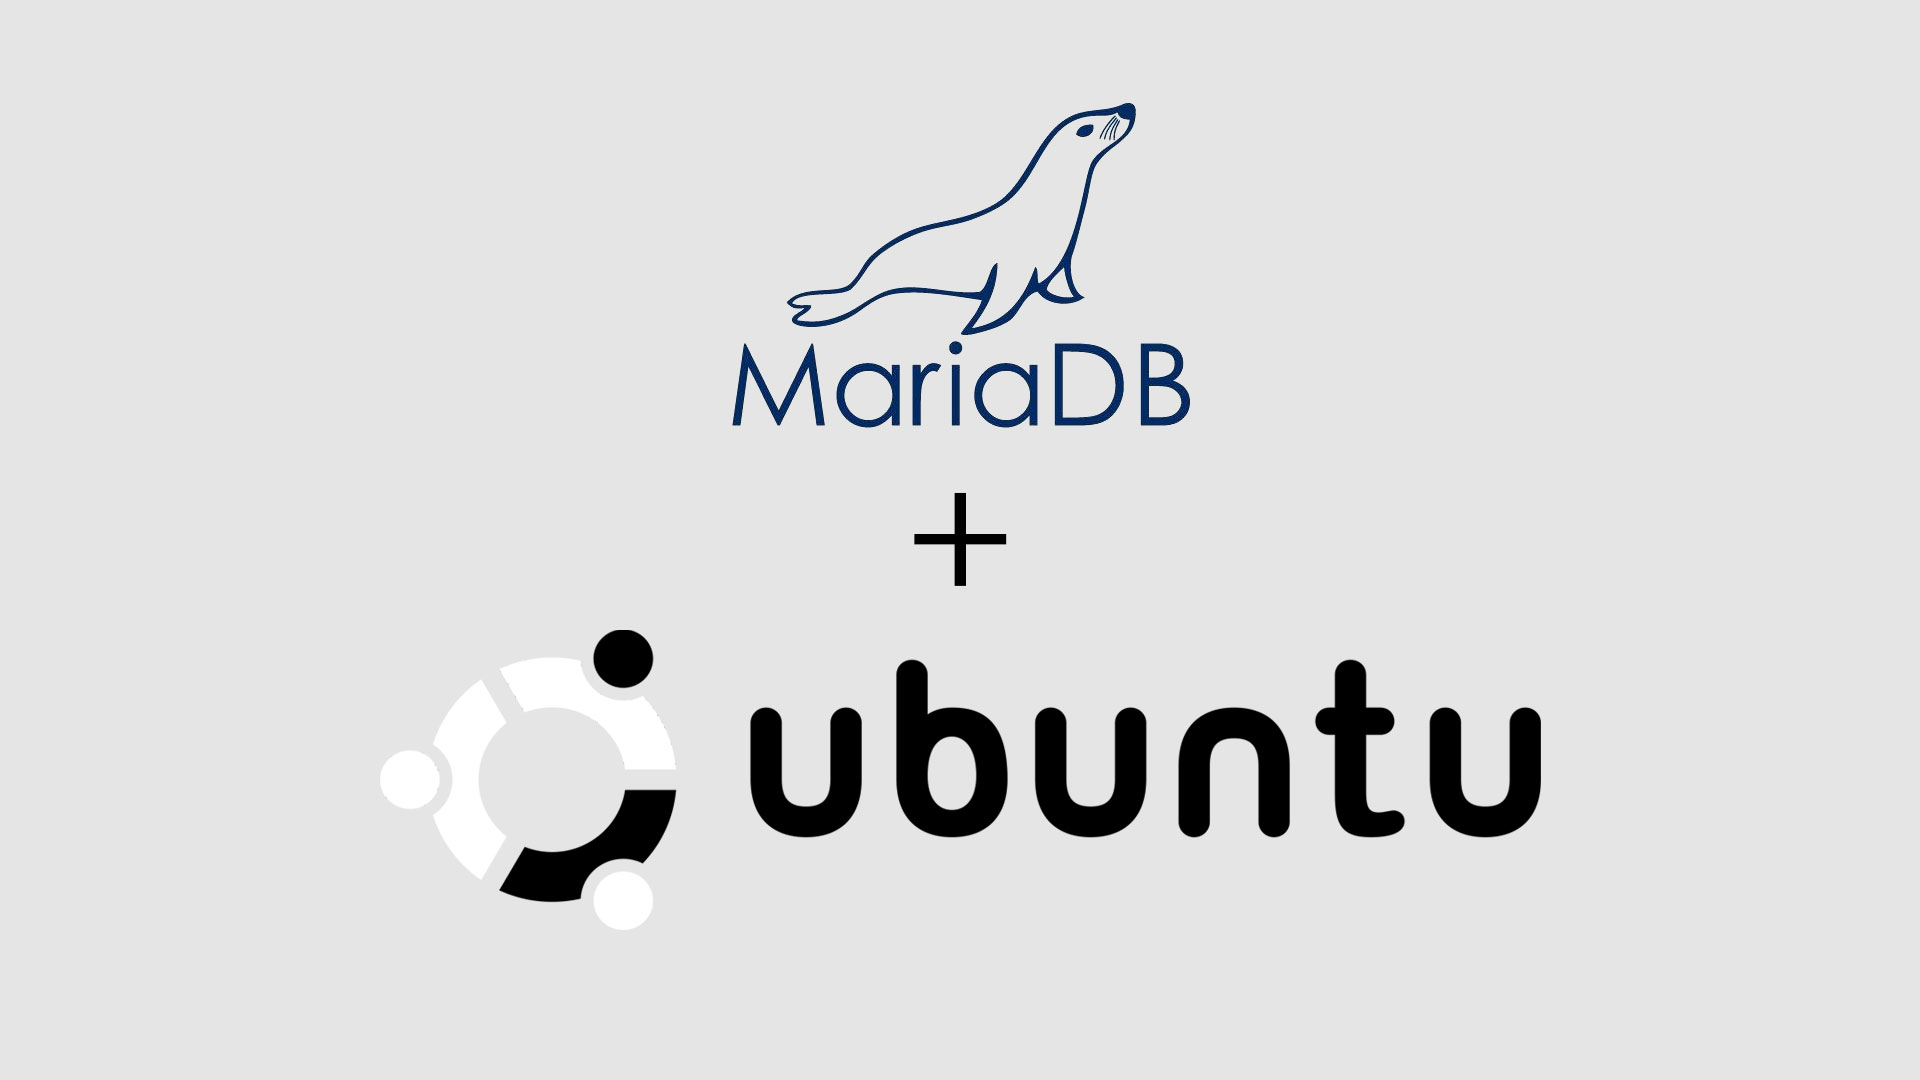 How to Install MariaDB on Ubuntu 16.04 / 18.04 / 18.10